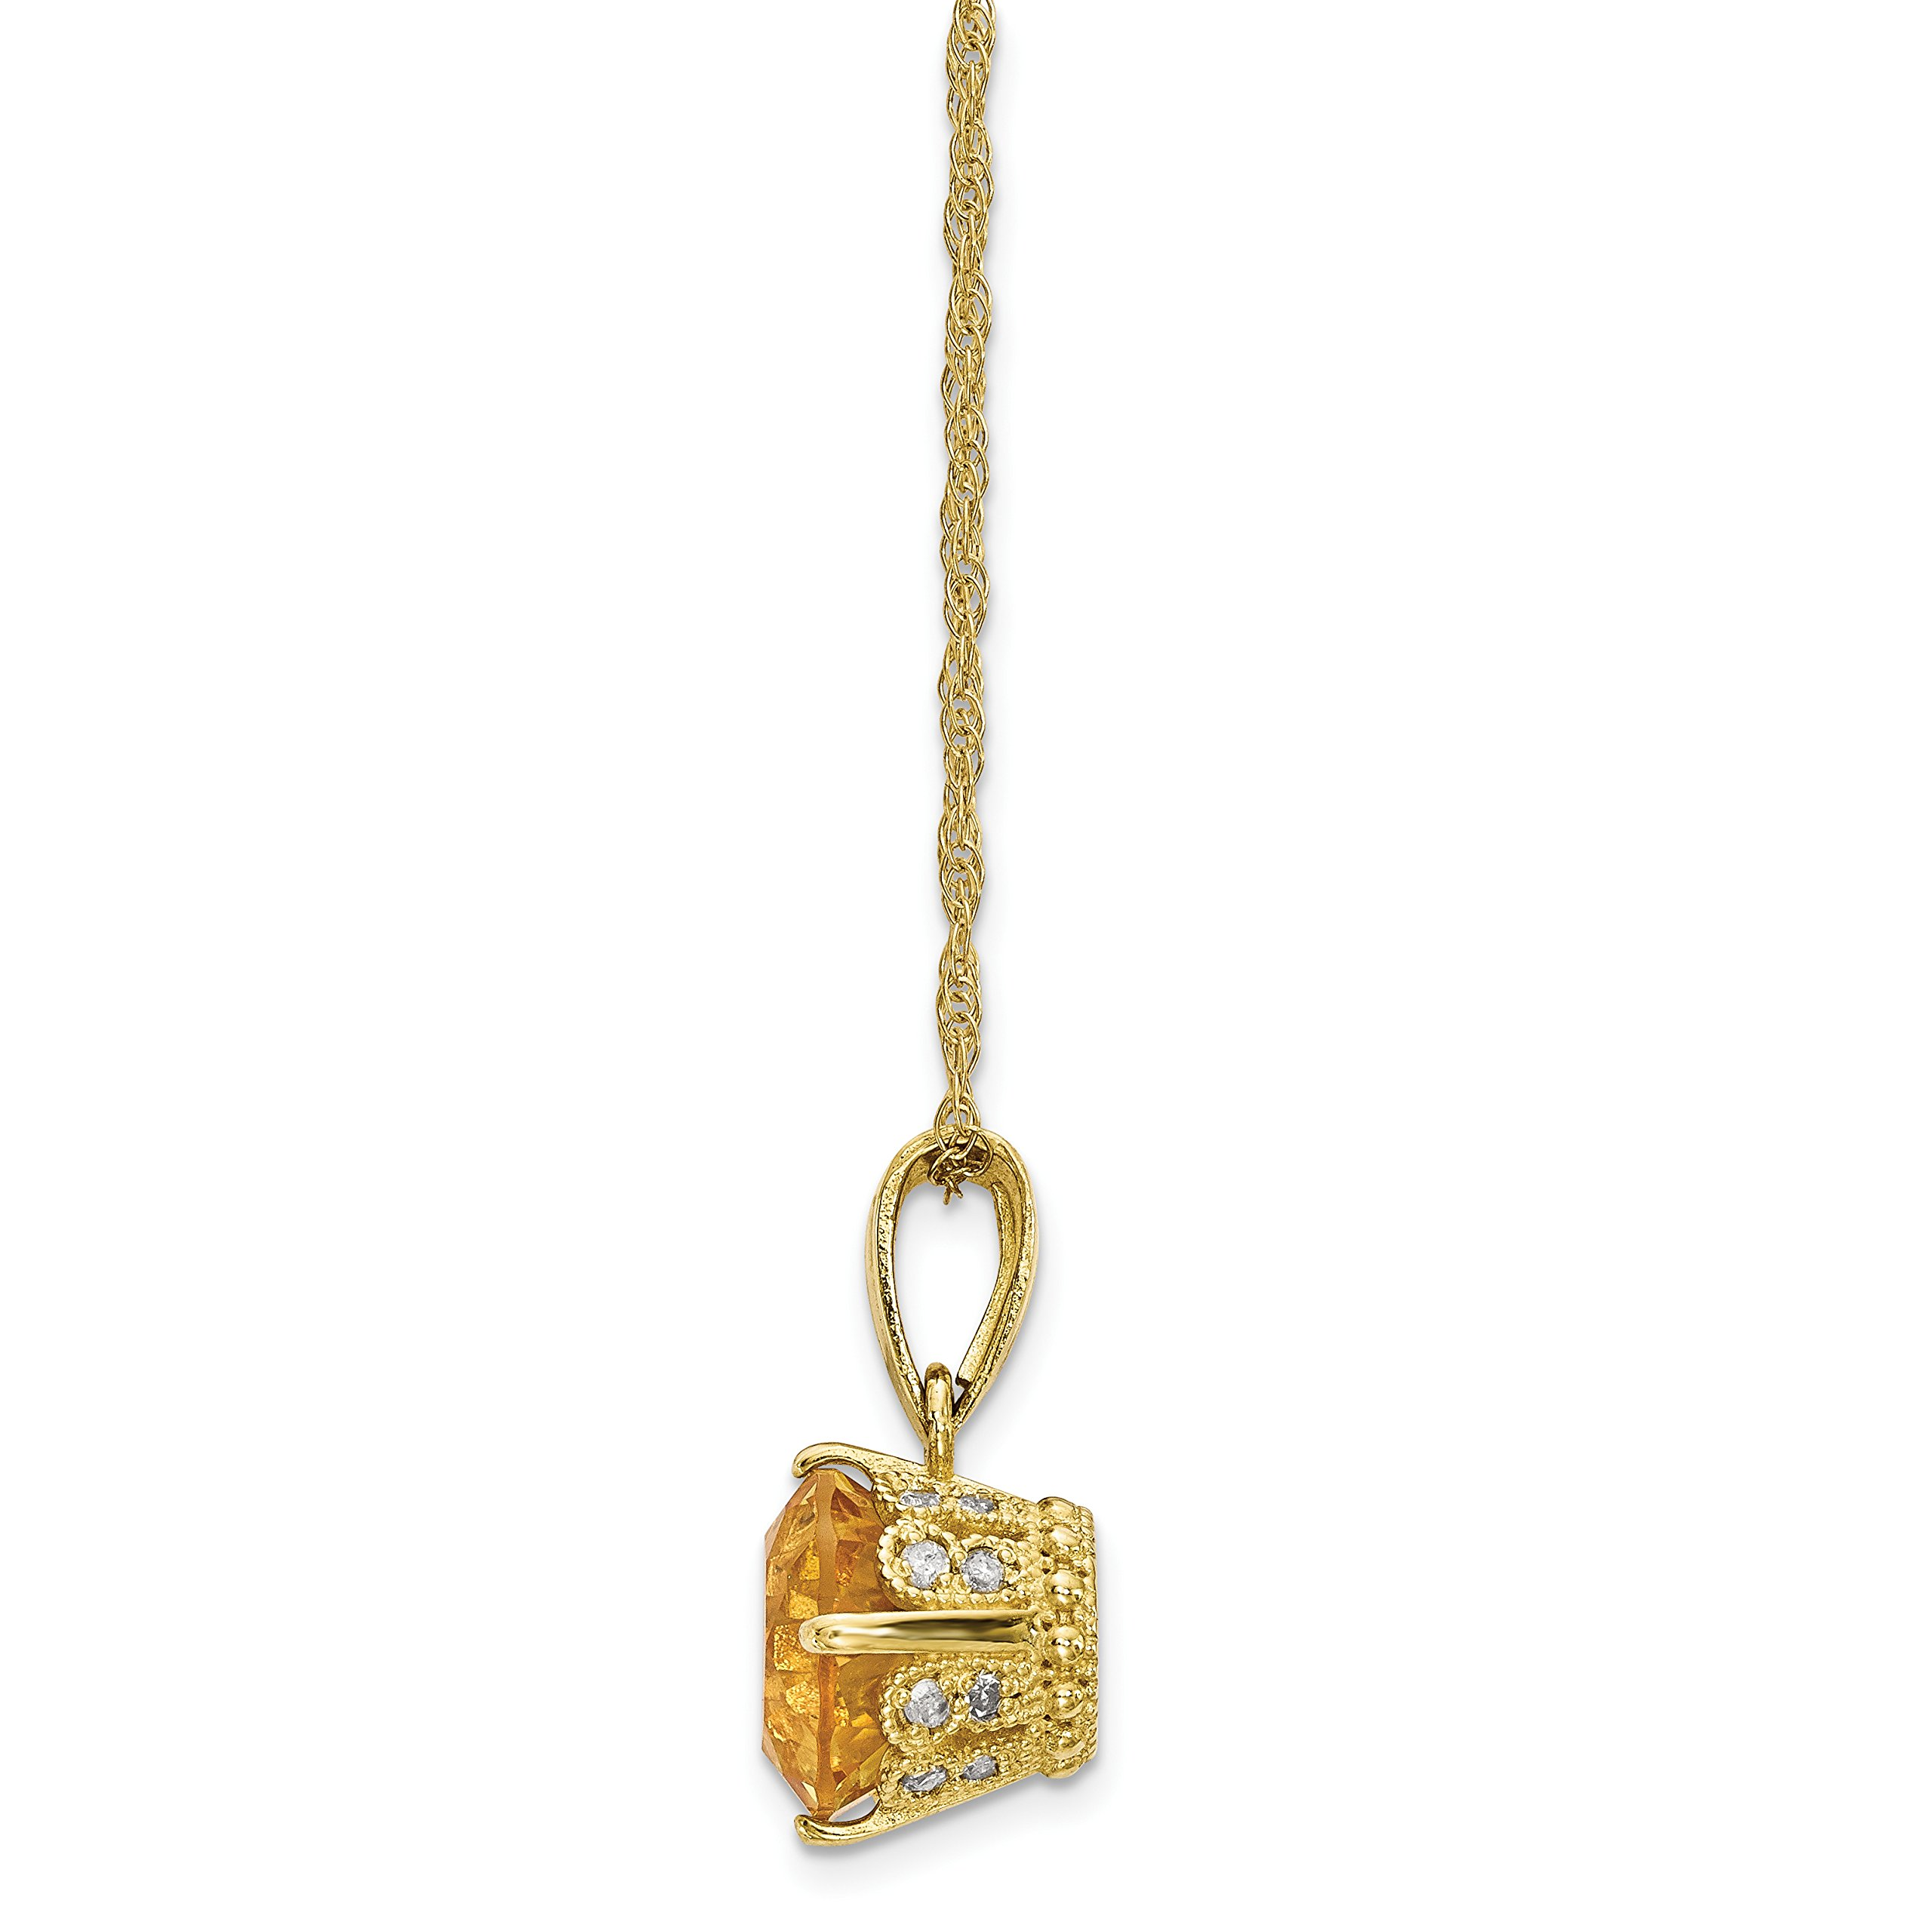 ICE CARATS 10k Yellow Gold Tiara Collection Diamond Citrine Chain Necklace Set Gemstone Fine Jewelry Gift Set For Women Heart by ICE CARATS (Image #2)